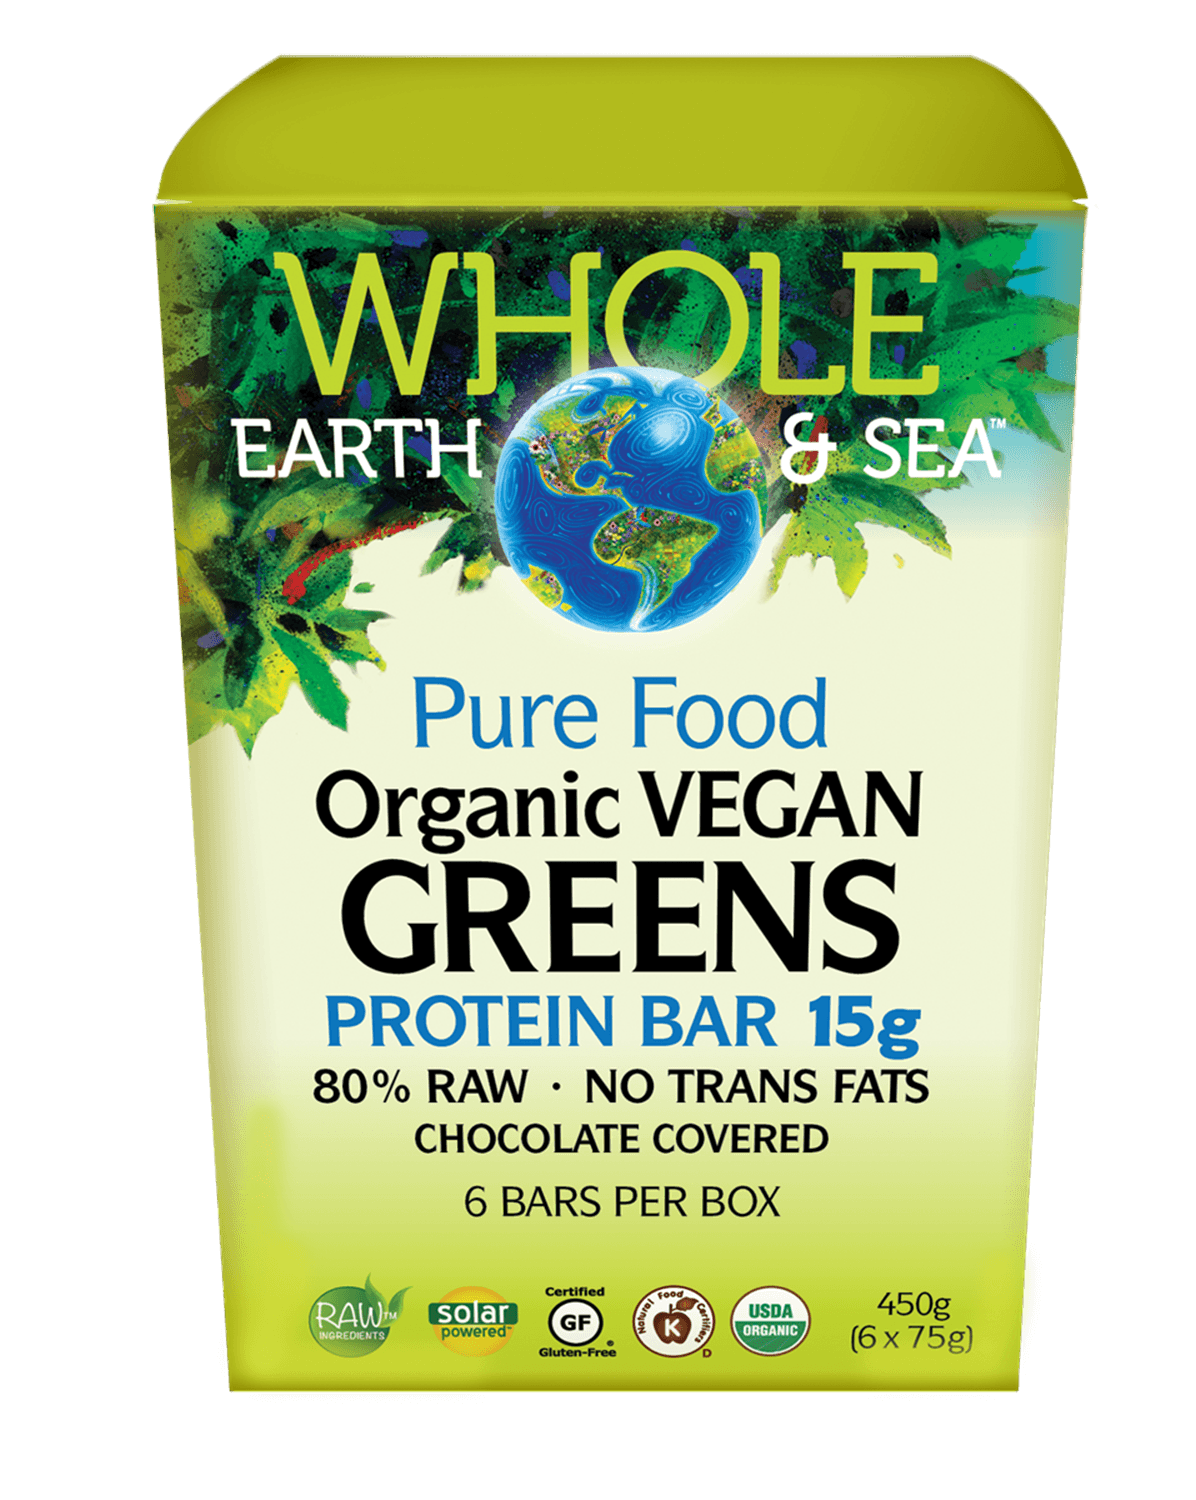 Supplements & Vitamins - Whole Earth & Sea - Organic Vegan Green Protein Bar, 6 X 75g